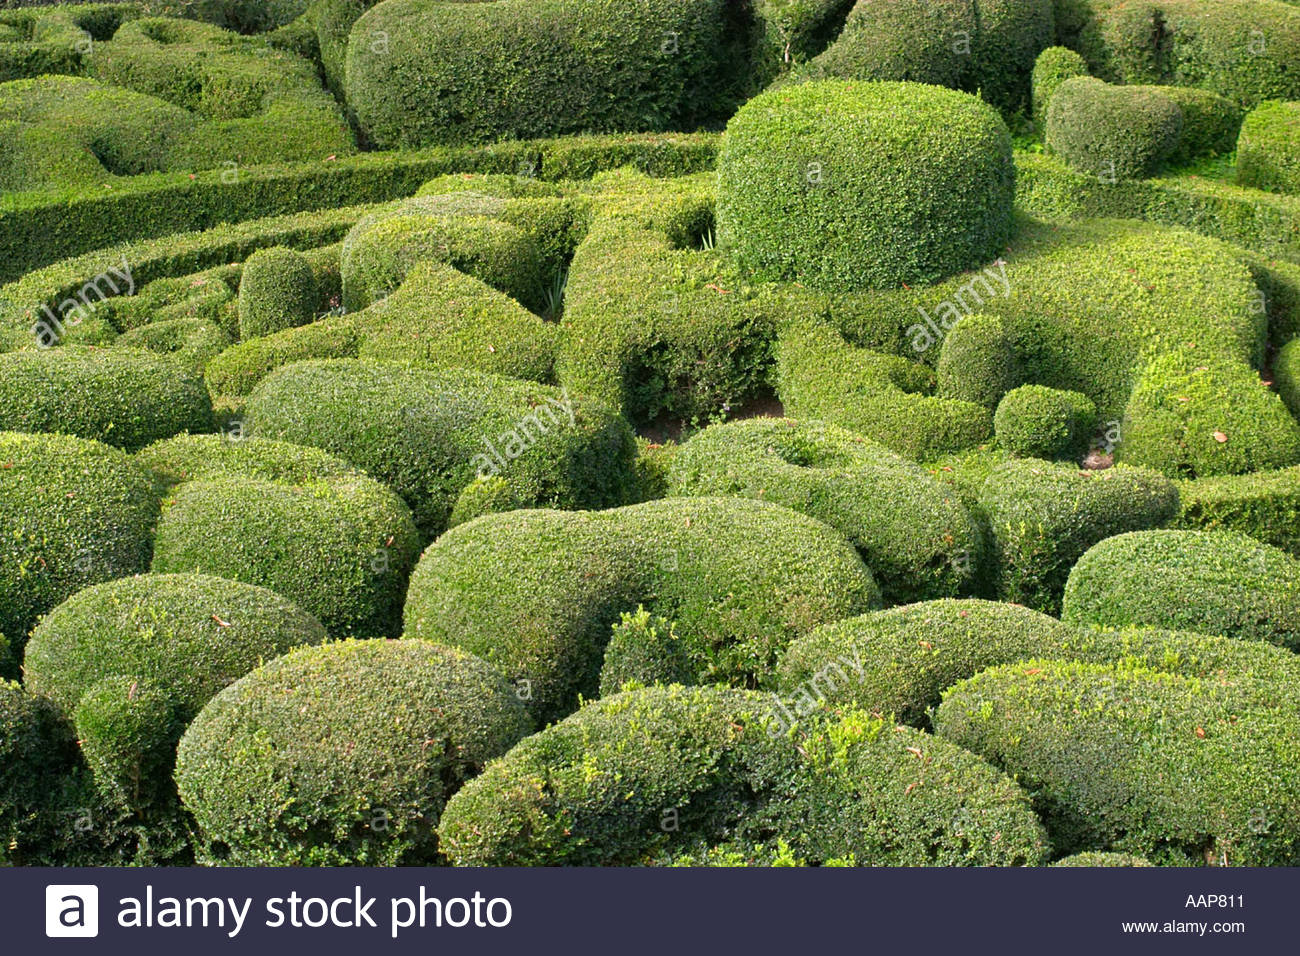 topiary at the chateau de marqueyssac dordogne france AAP811